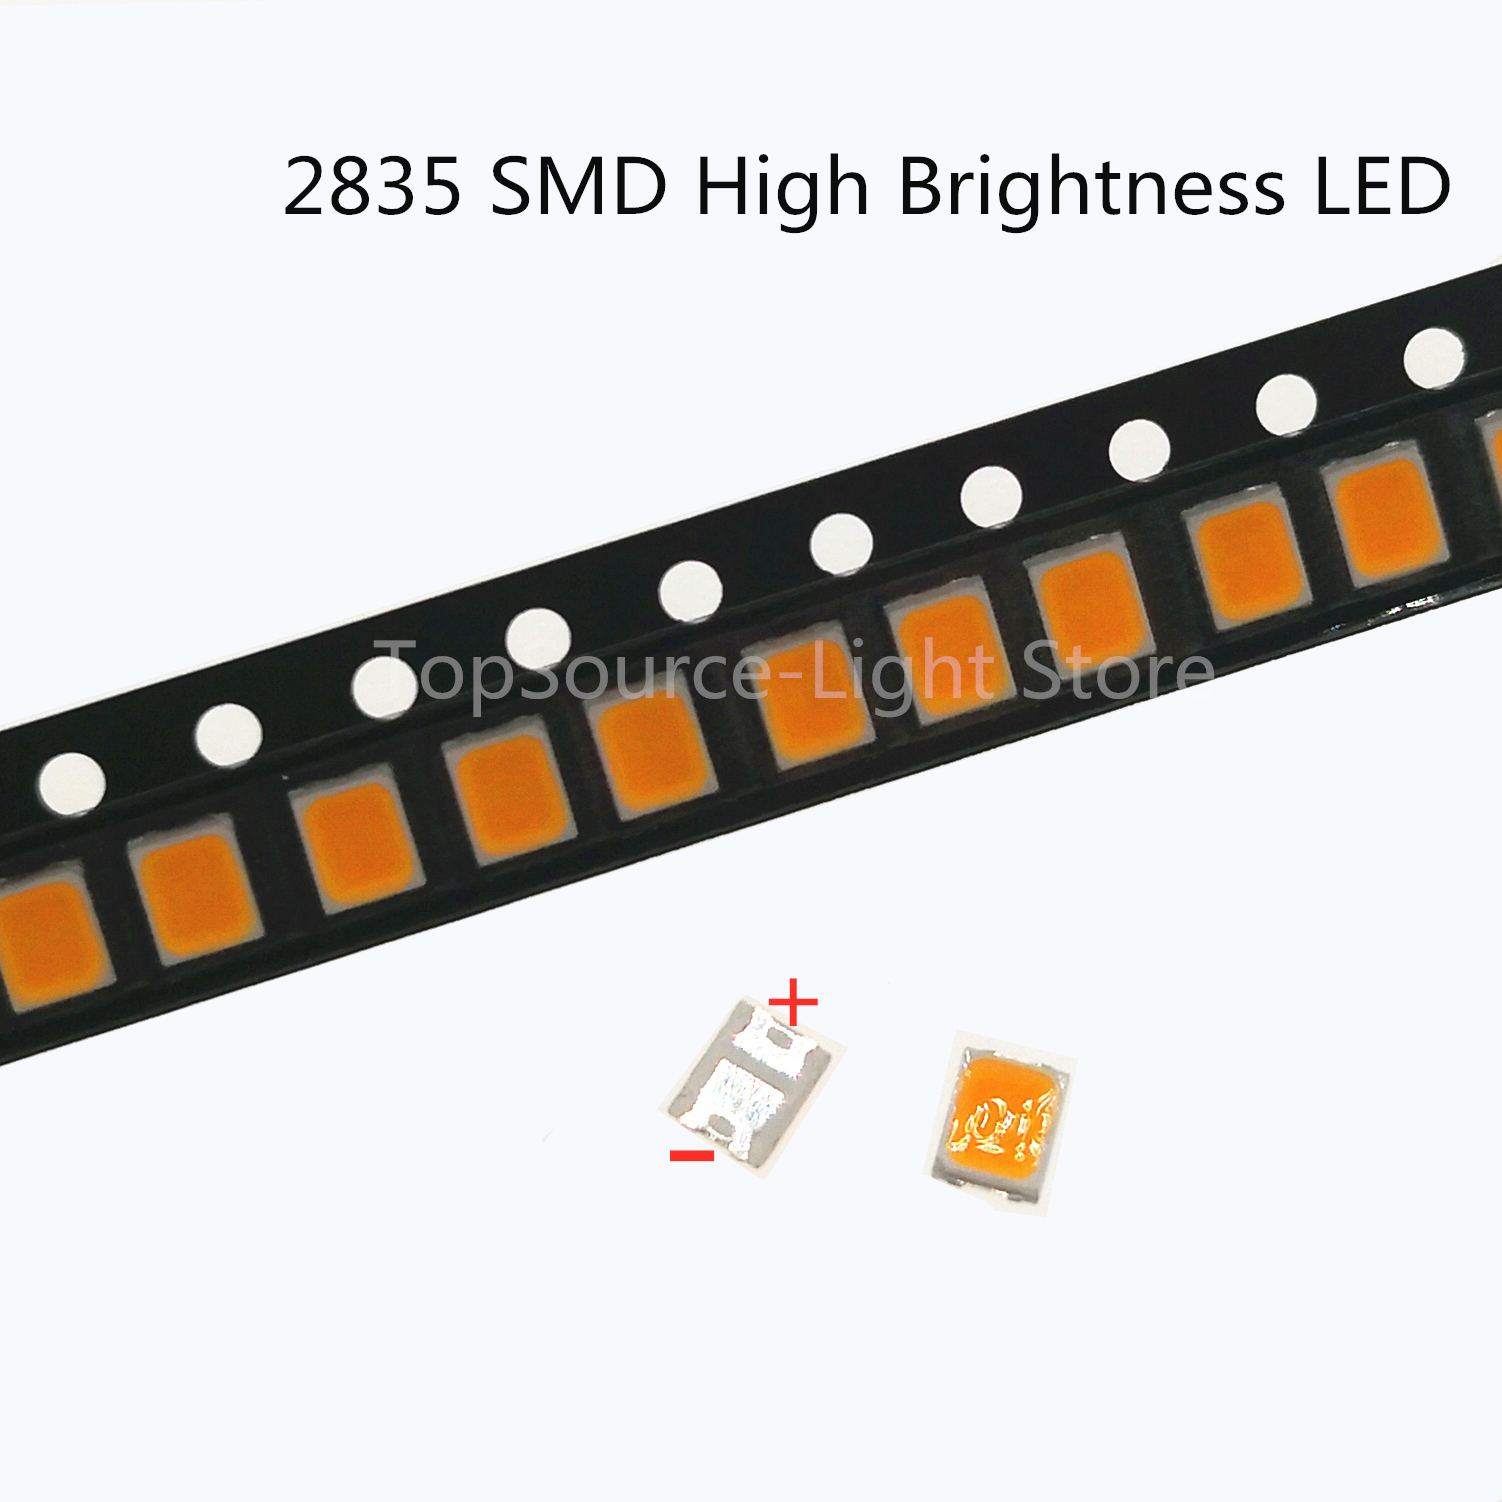 100Pcs SMD LED 2835 Chips 1W 3V 6V 9V 18V 36V Beads Light White 2700K 4000K 6000K 9500k 1W 130LM Surface Mount PCB Light Lamp